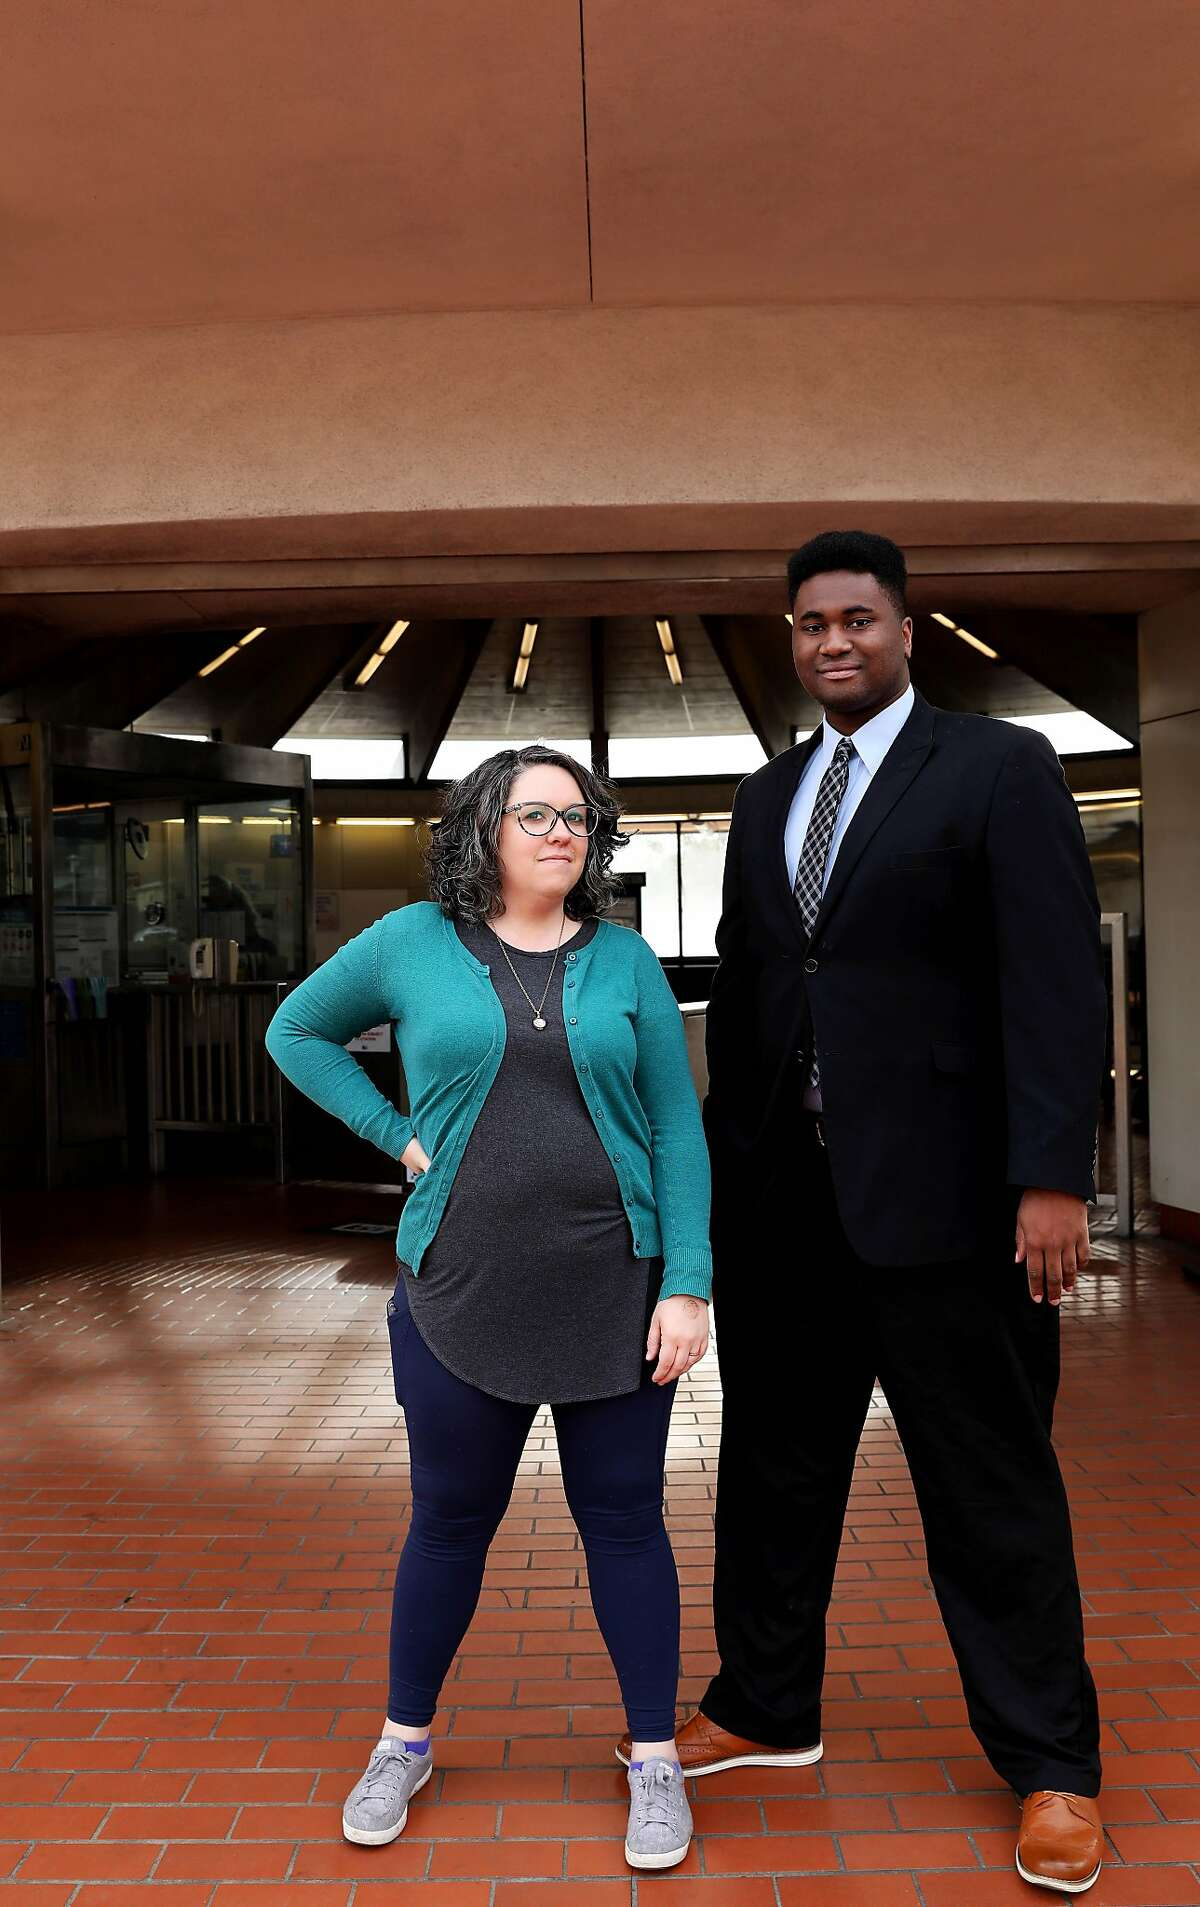 Pro-housing activists and North Berkeley residents Libby Lee-Egan 34, left, and Darrell Owens, 23, pose for a portrait at the North Berkeley BART Station in North Berkeley, Calif., on Tuesday, December 17, 2019.